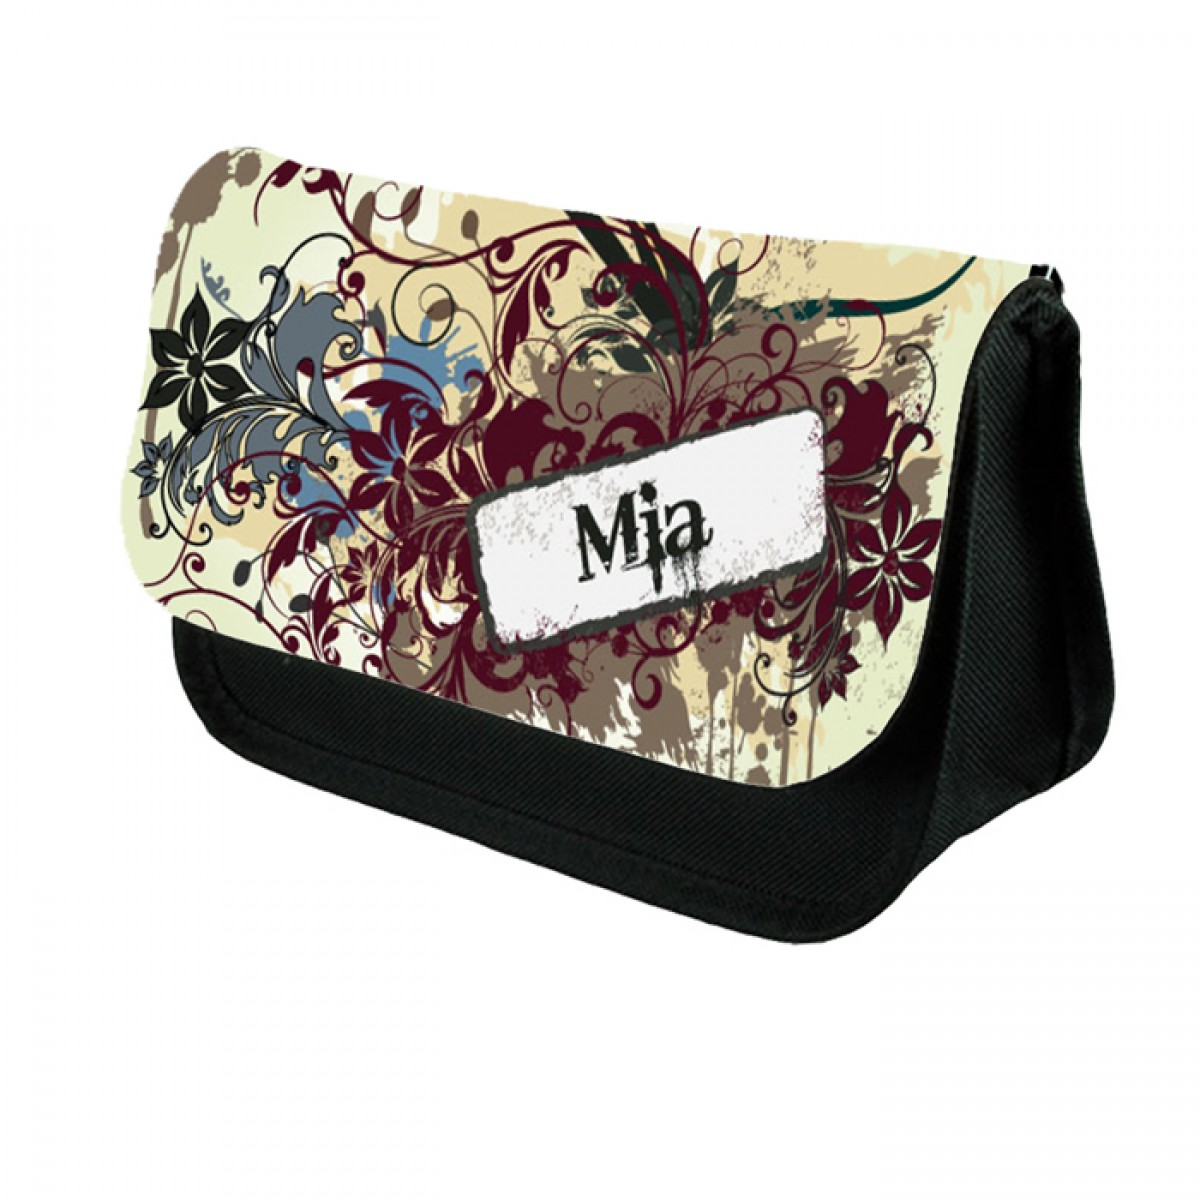 Grungy looking design pencil case make up bag birthday